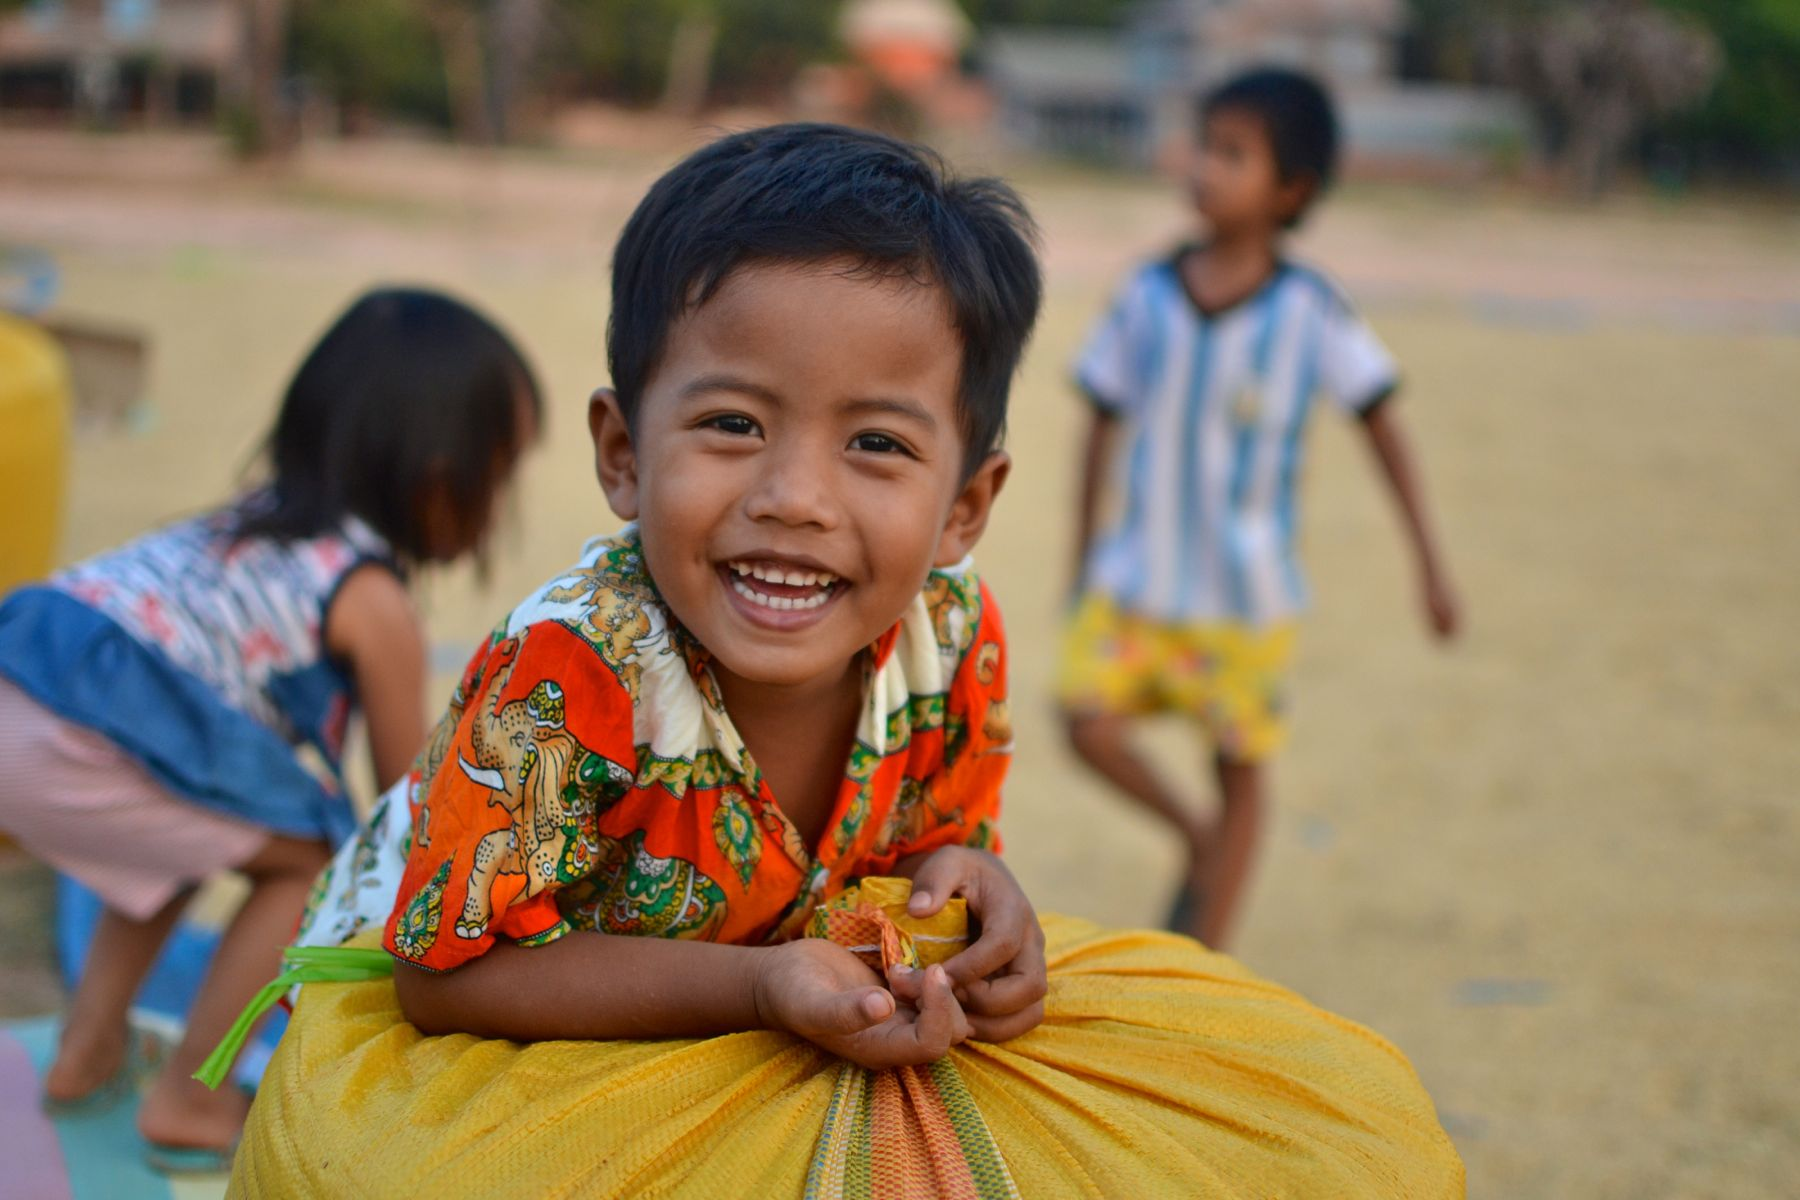 Smiling kids- found here in Siem Reap, Cambodia and also all around the world